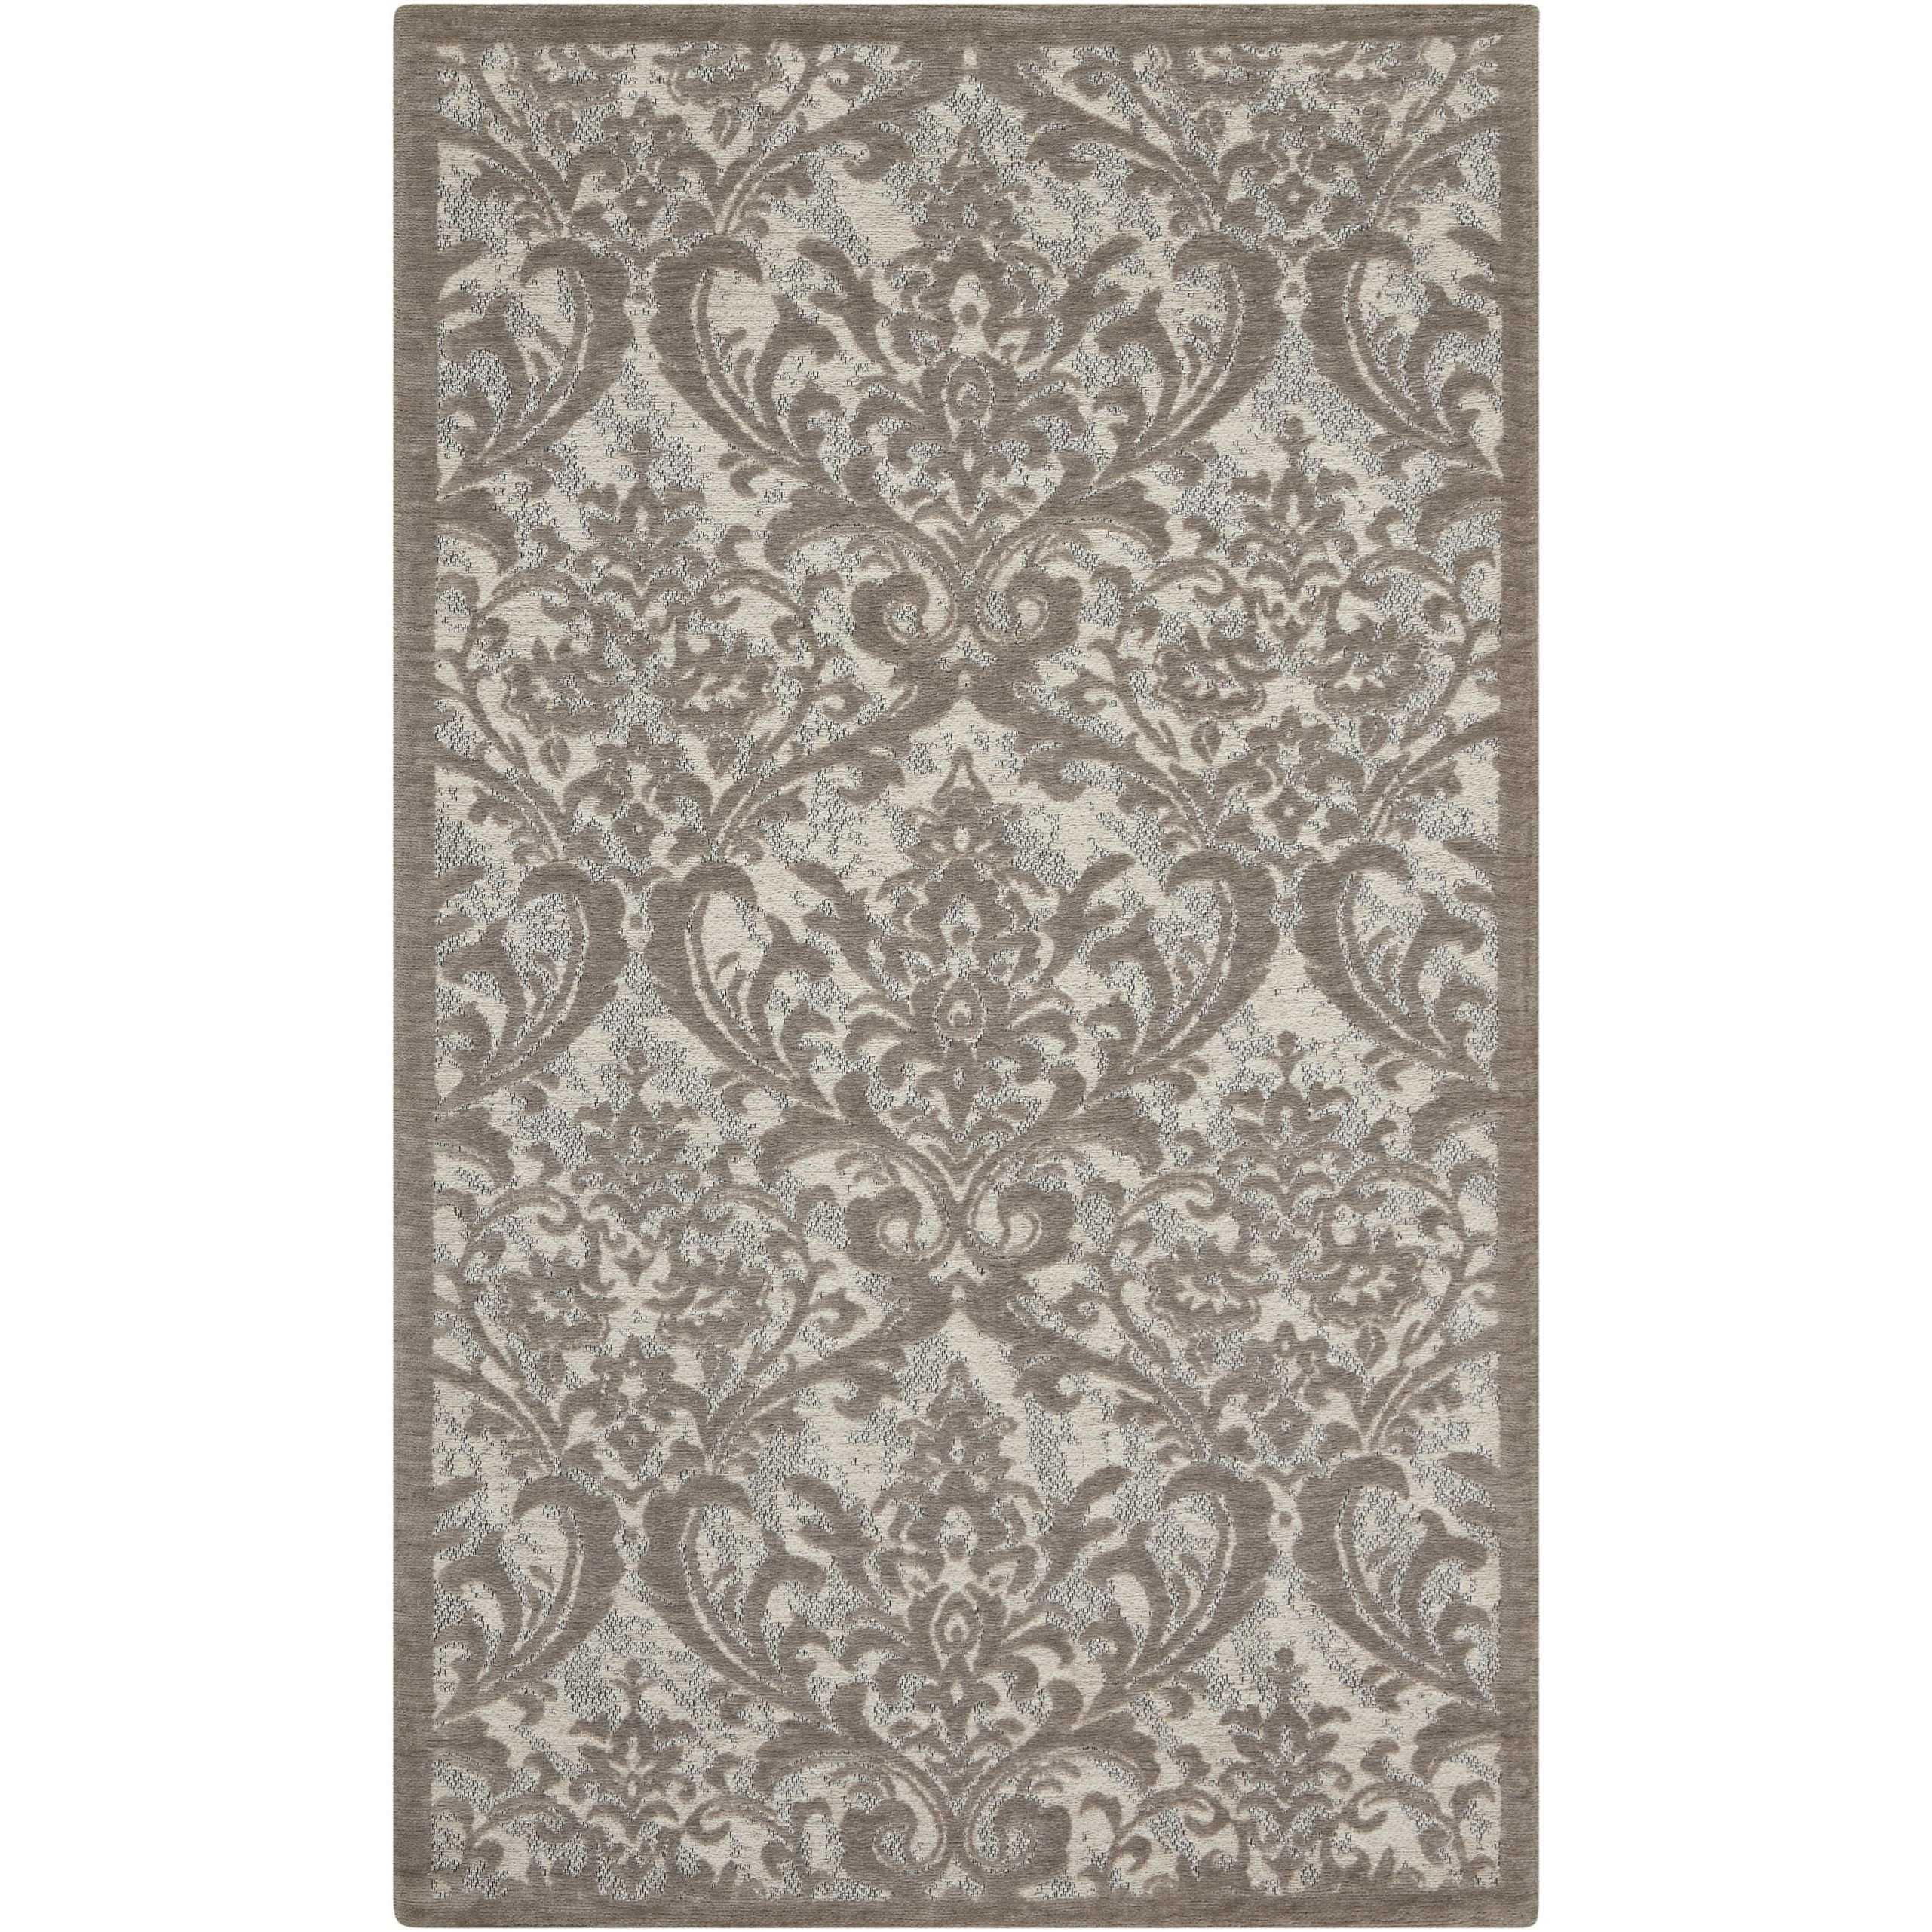 """Damask 2'3"""" X 3'9"""" Iv/Grey Rug by Nourison at Home Collections Furniture"""